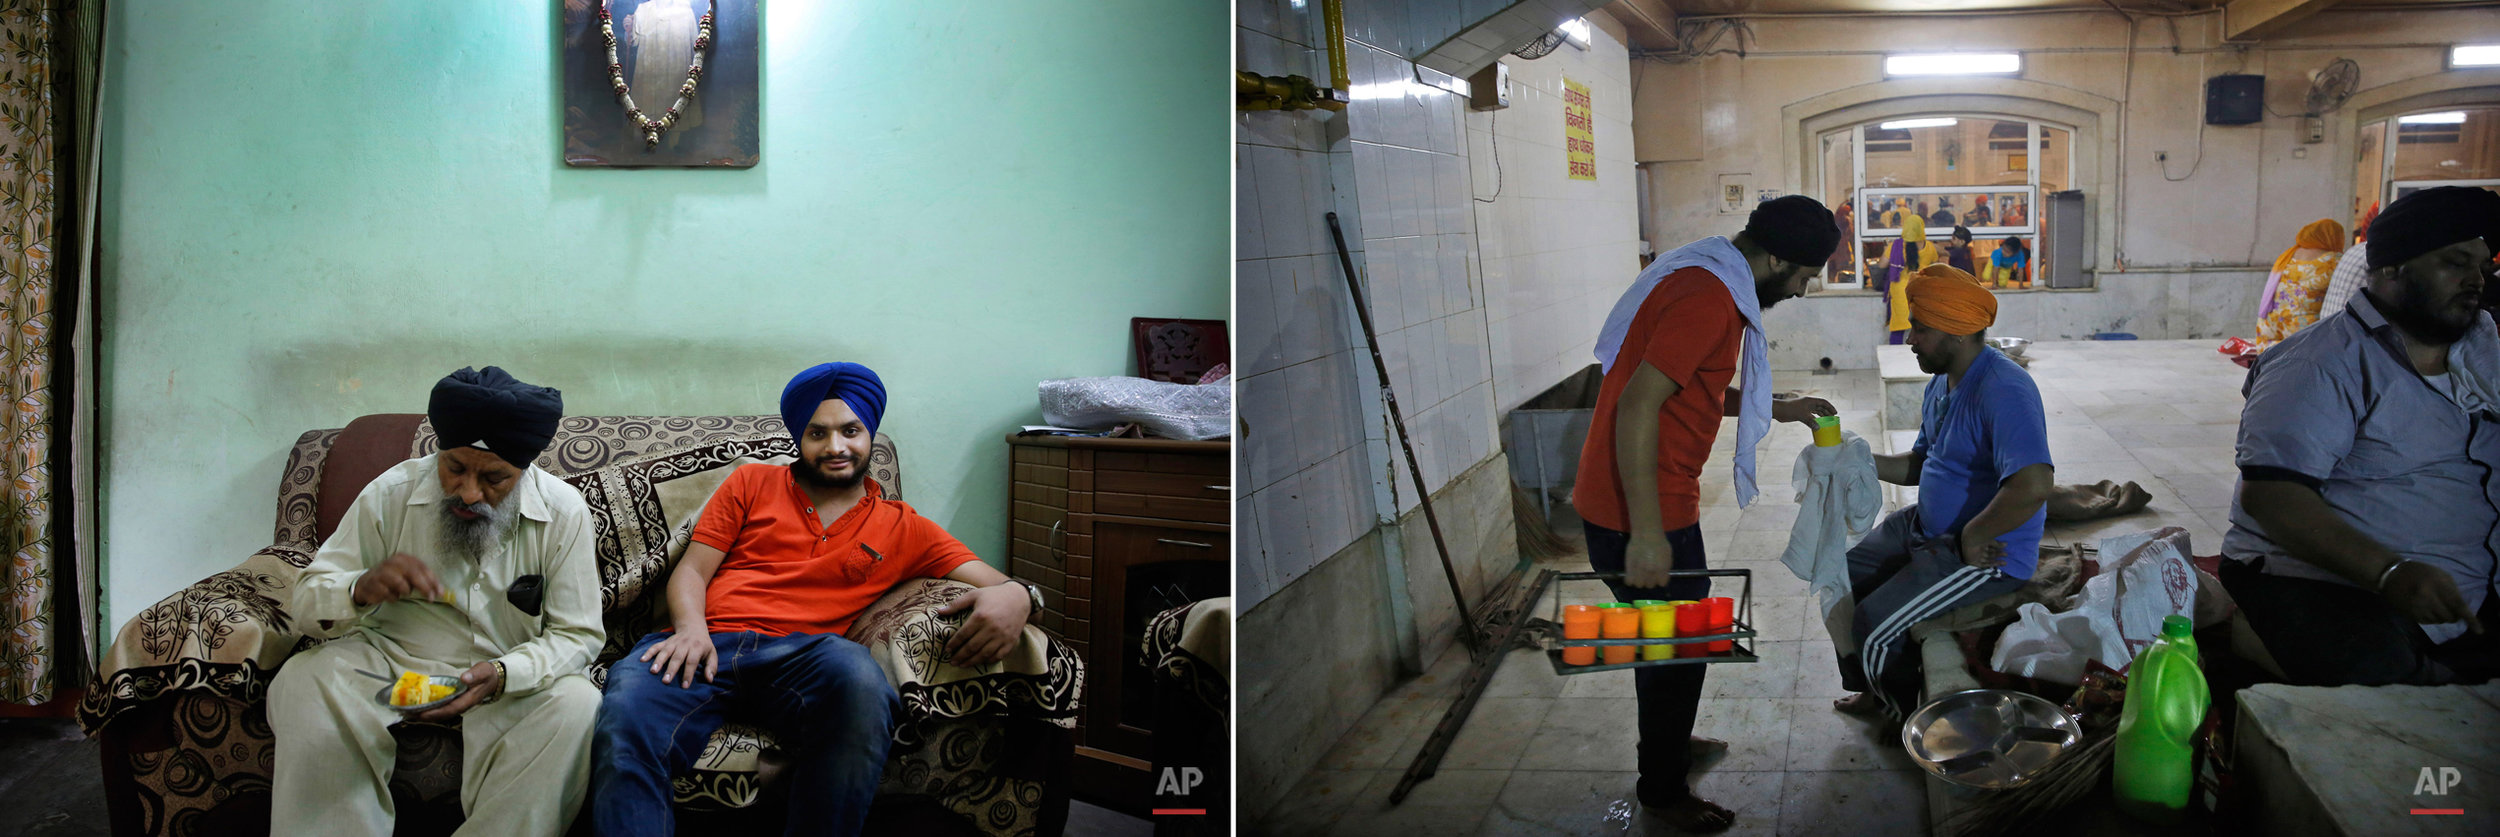 This two picture combo shows on left, Manpreet Singh, 23, who works in a call centre, sits with his father, at their house in New Delhi, India, on May 30, 2015, as on right, he serves drinking water to a Sikh devotee during langar, or free community meal, at the Bangla Sahib Gurudwara or Sikh temple, in New Delhi, India, on May 23, 2015. Service is one of the most integral traditions of gurudwaras. From cleaning to preparing tons of food every day there is plenty of work to be done. And there are plenty of sevadaars, or volunteers, to do it. While the gurudwara employs a small group of men to help manage the kitchen, it depends on visiting worshippers to contribute nearly half of all work and food supplies. (AP Photo/Manish Swarup)